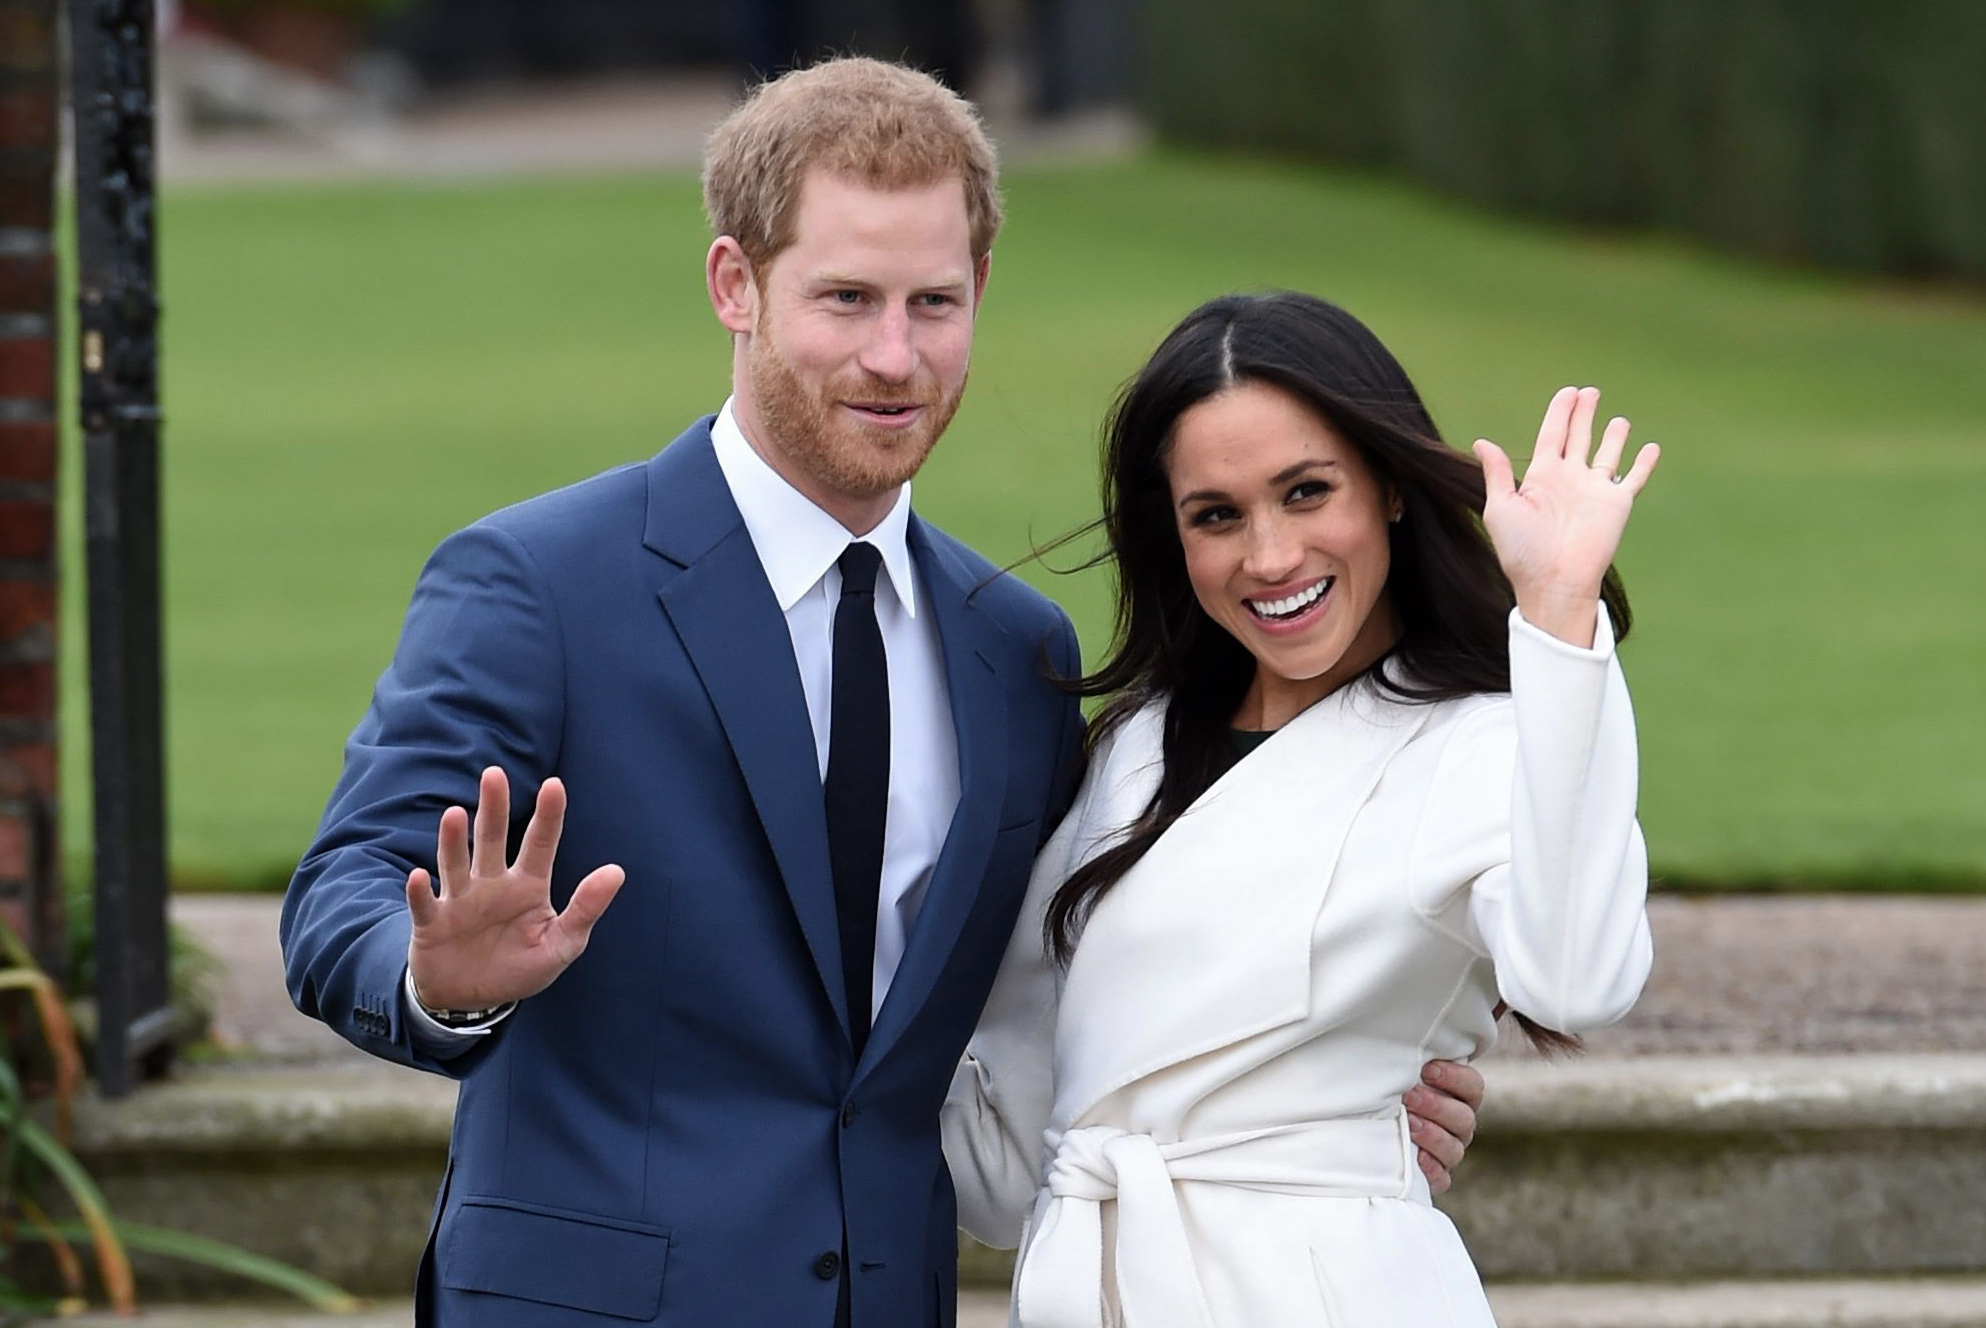 Meghan Markle Gives Birth to Daughter